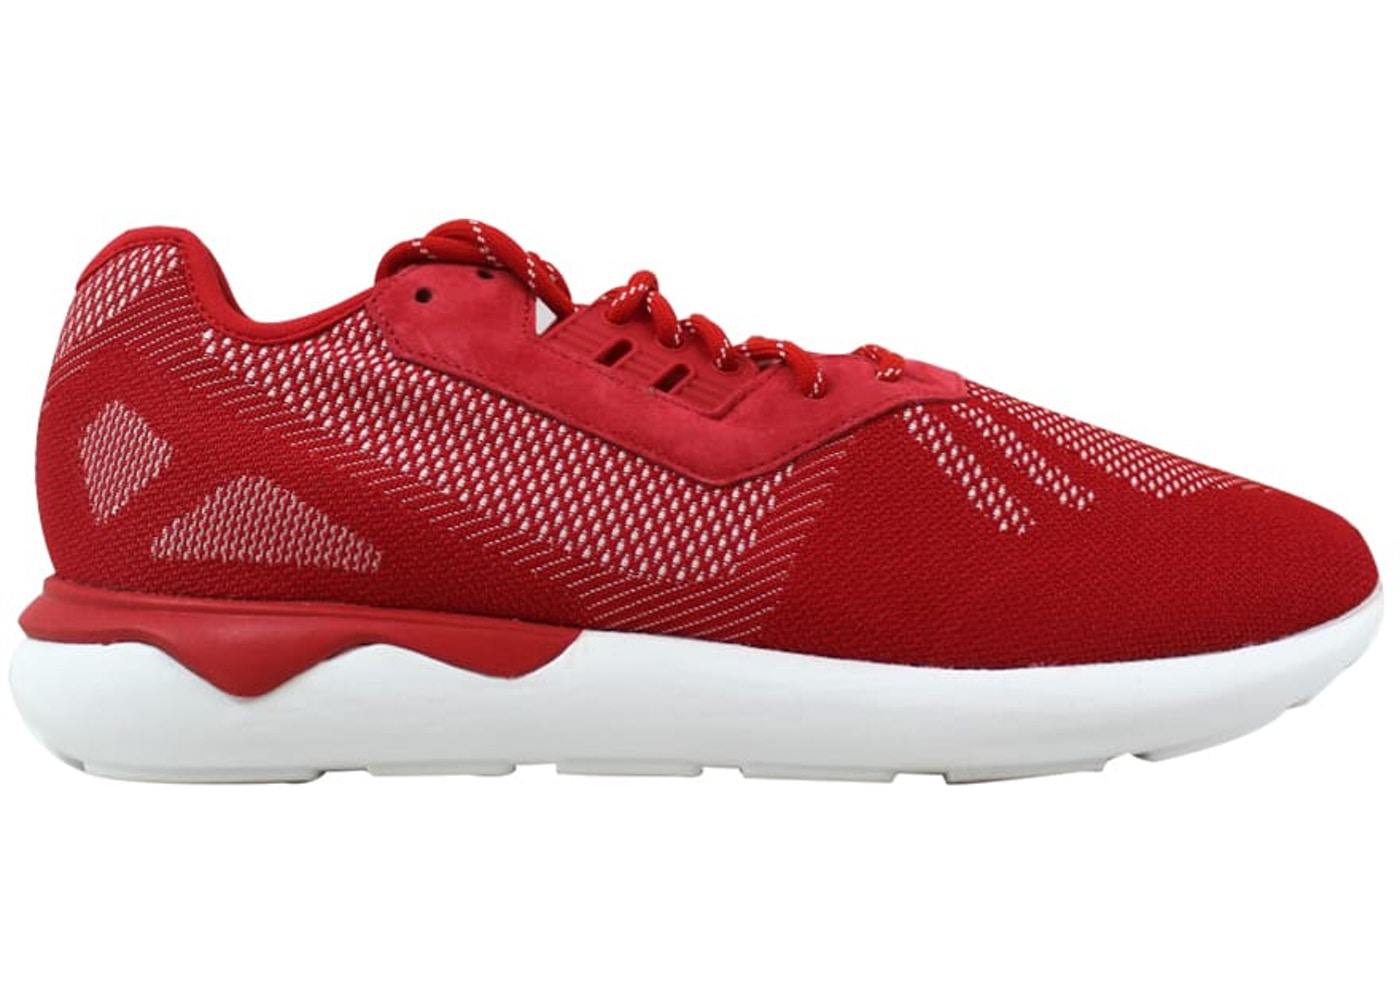 finest selection 305b9 47fe4 Sell. or Ask. Size --. View All Bids. adidas Tubular Runner Weave Scarlet  Red Scarlet Red-White